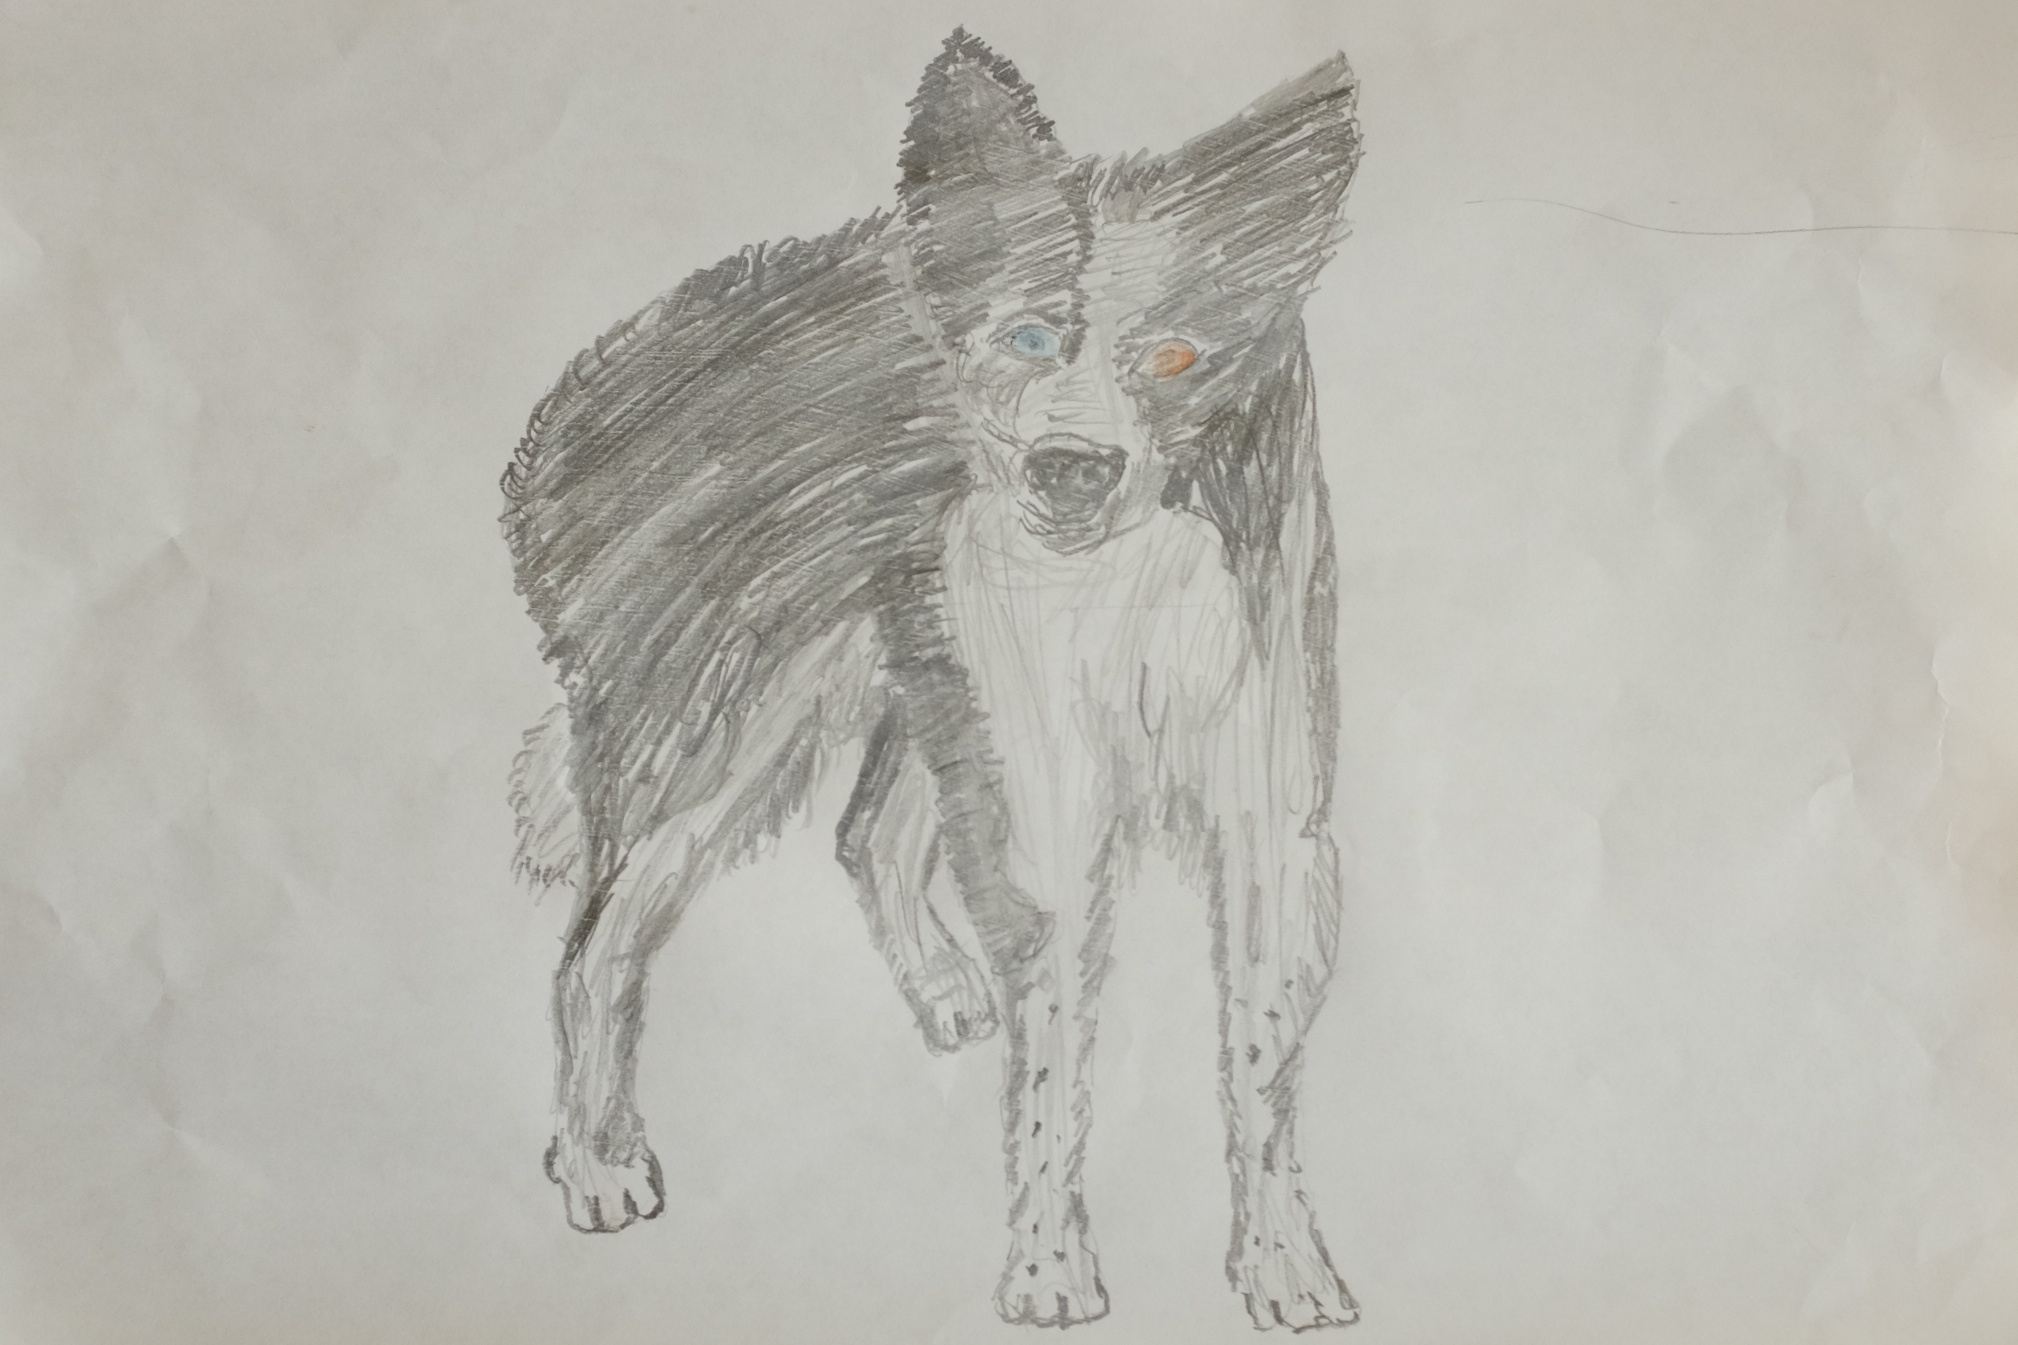 Picture of Sam drawn by Richard (Sam's owner)